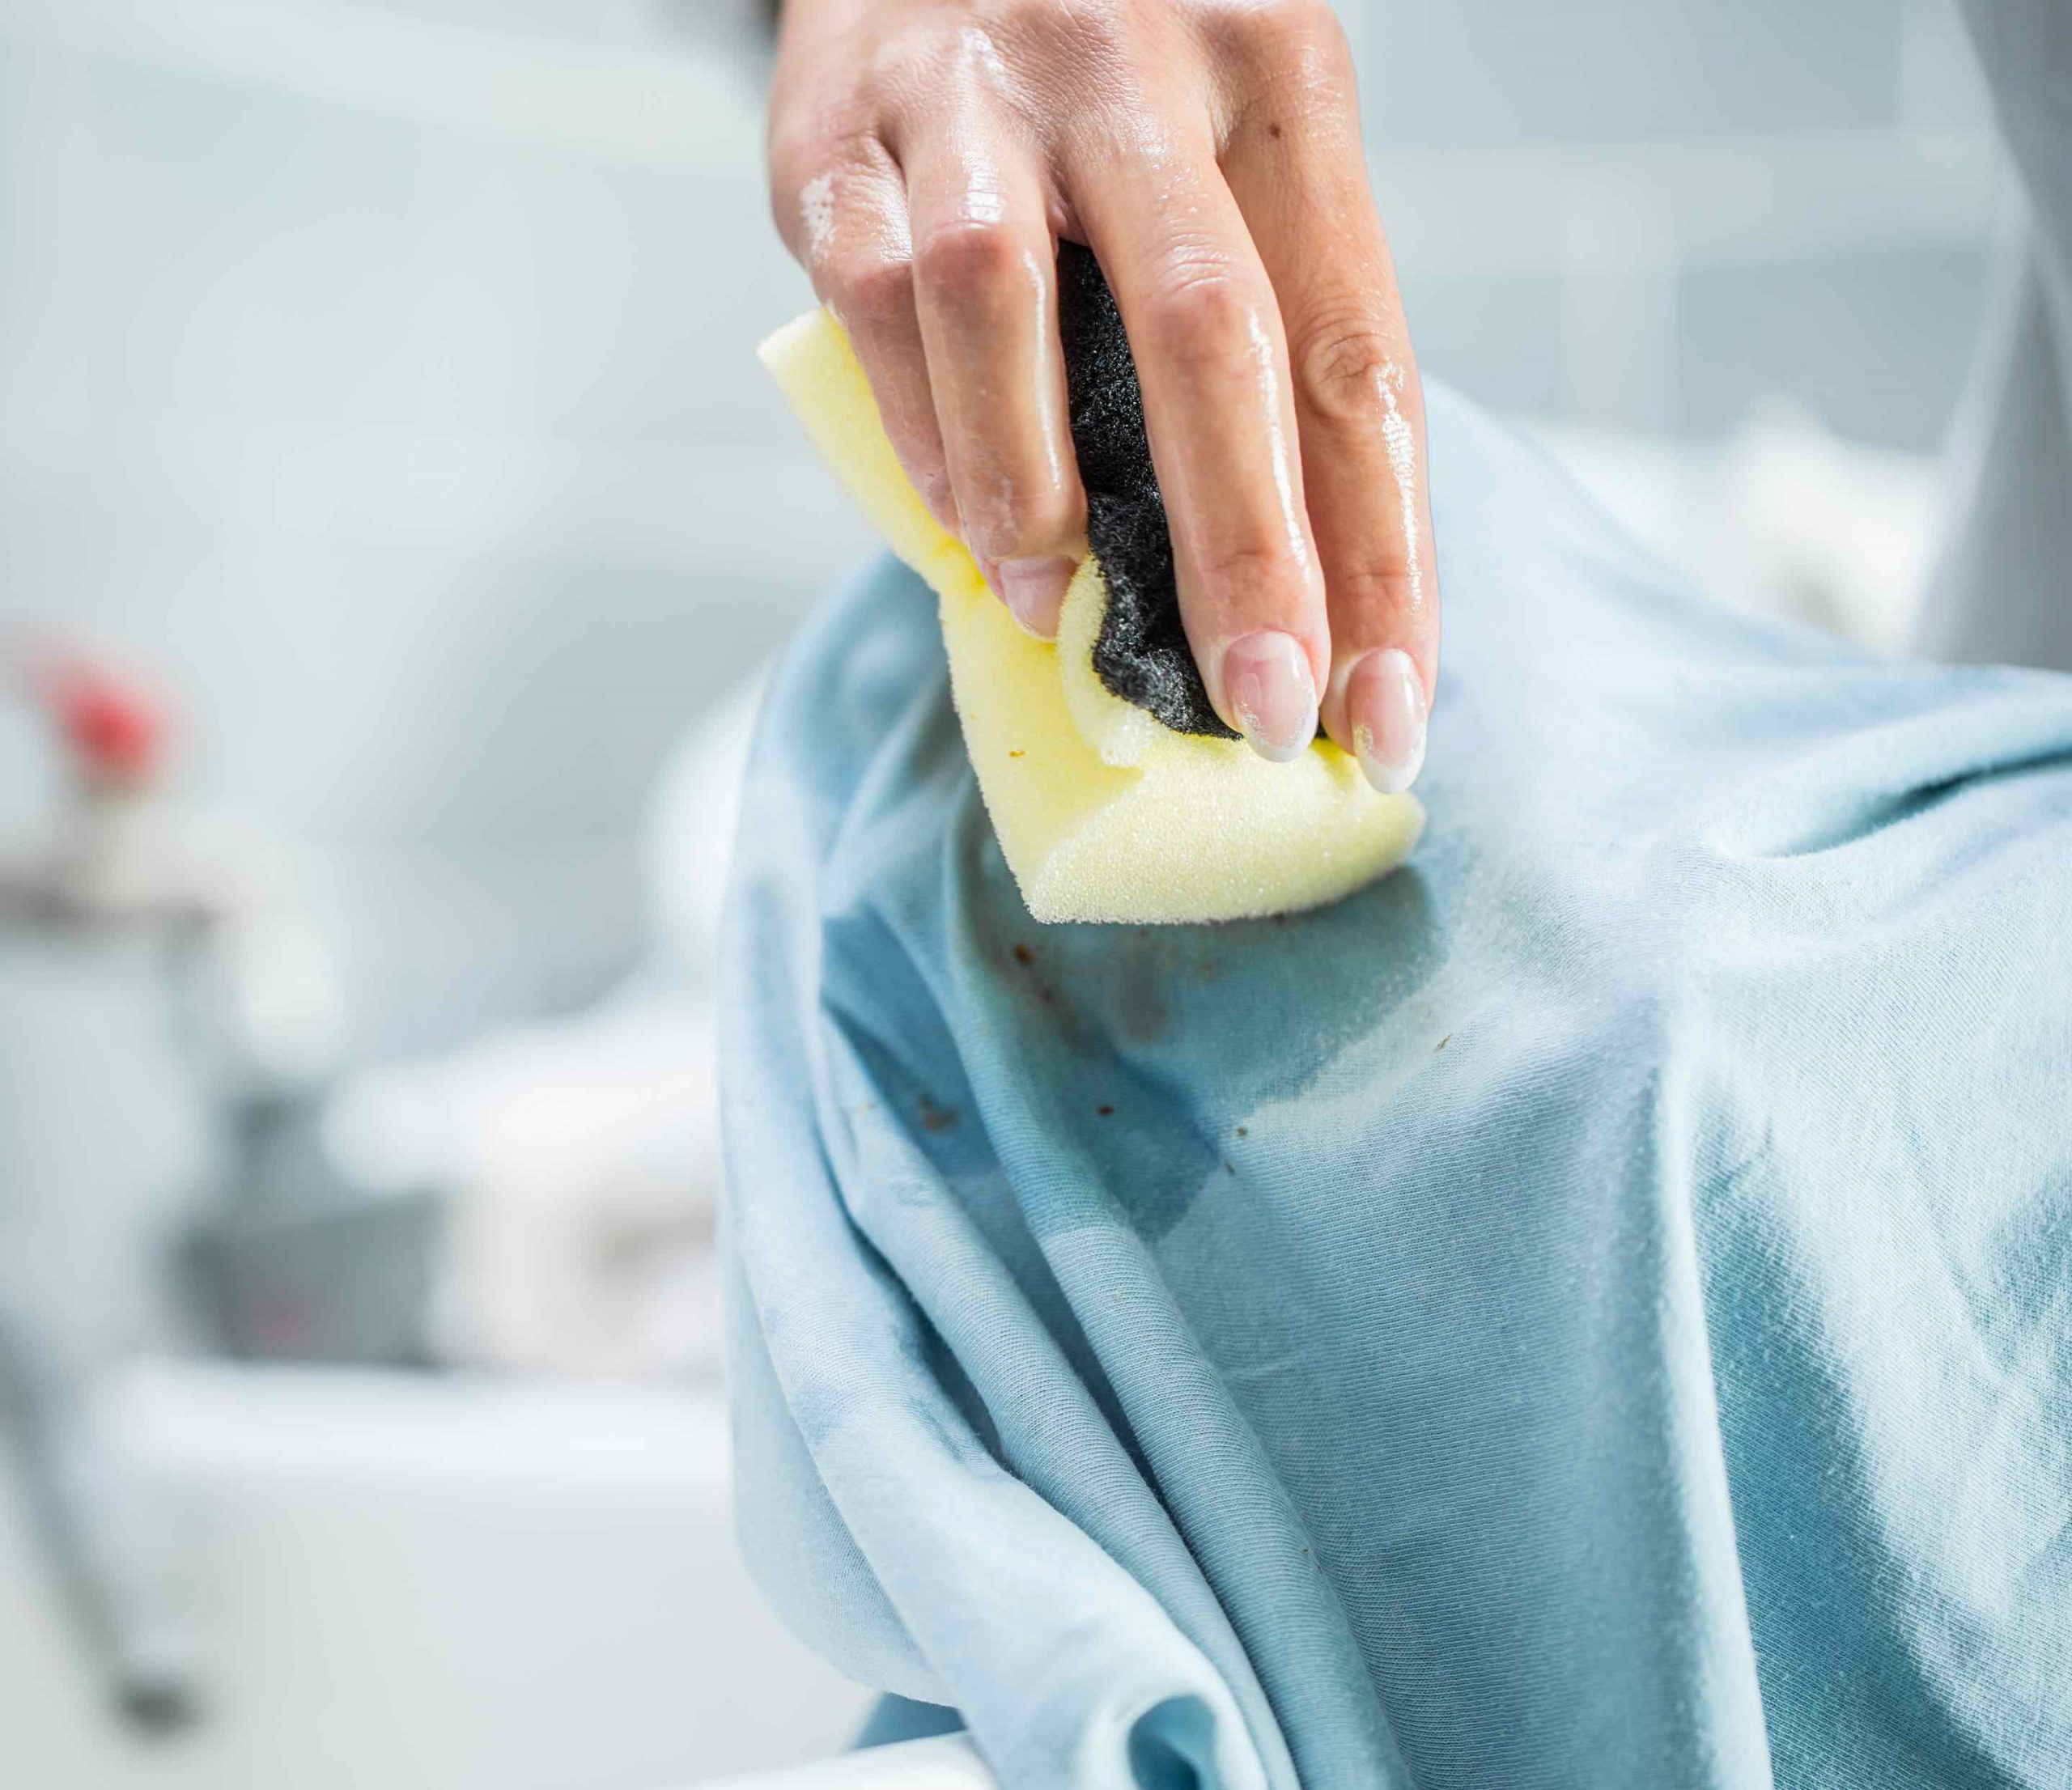 Woman scrubbing stain out of a shirt with Plant-Based Stain Remover